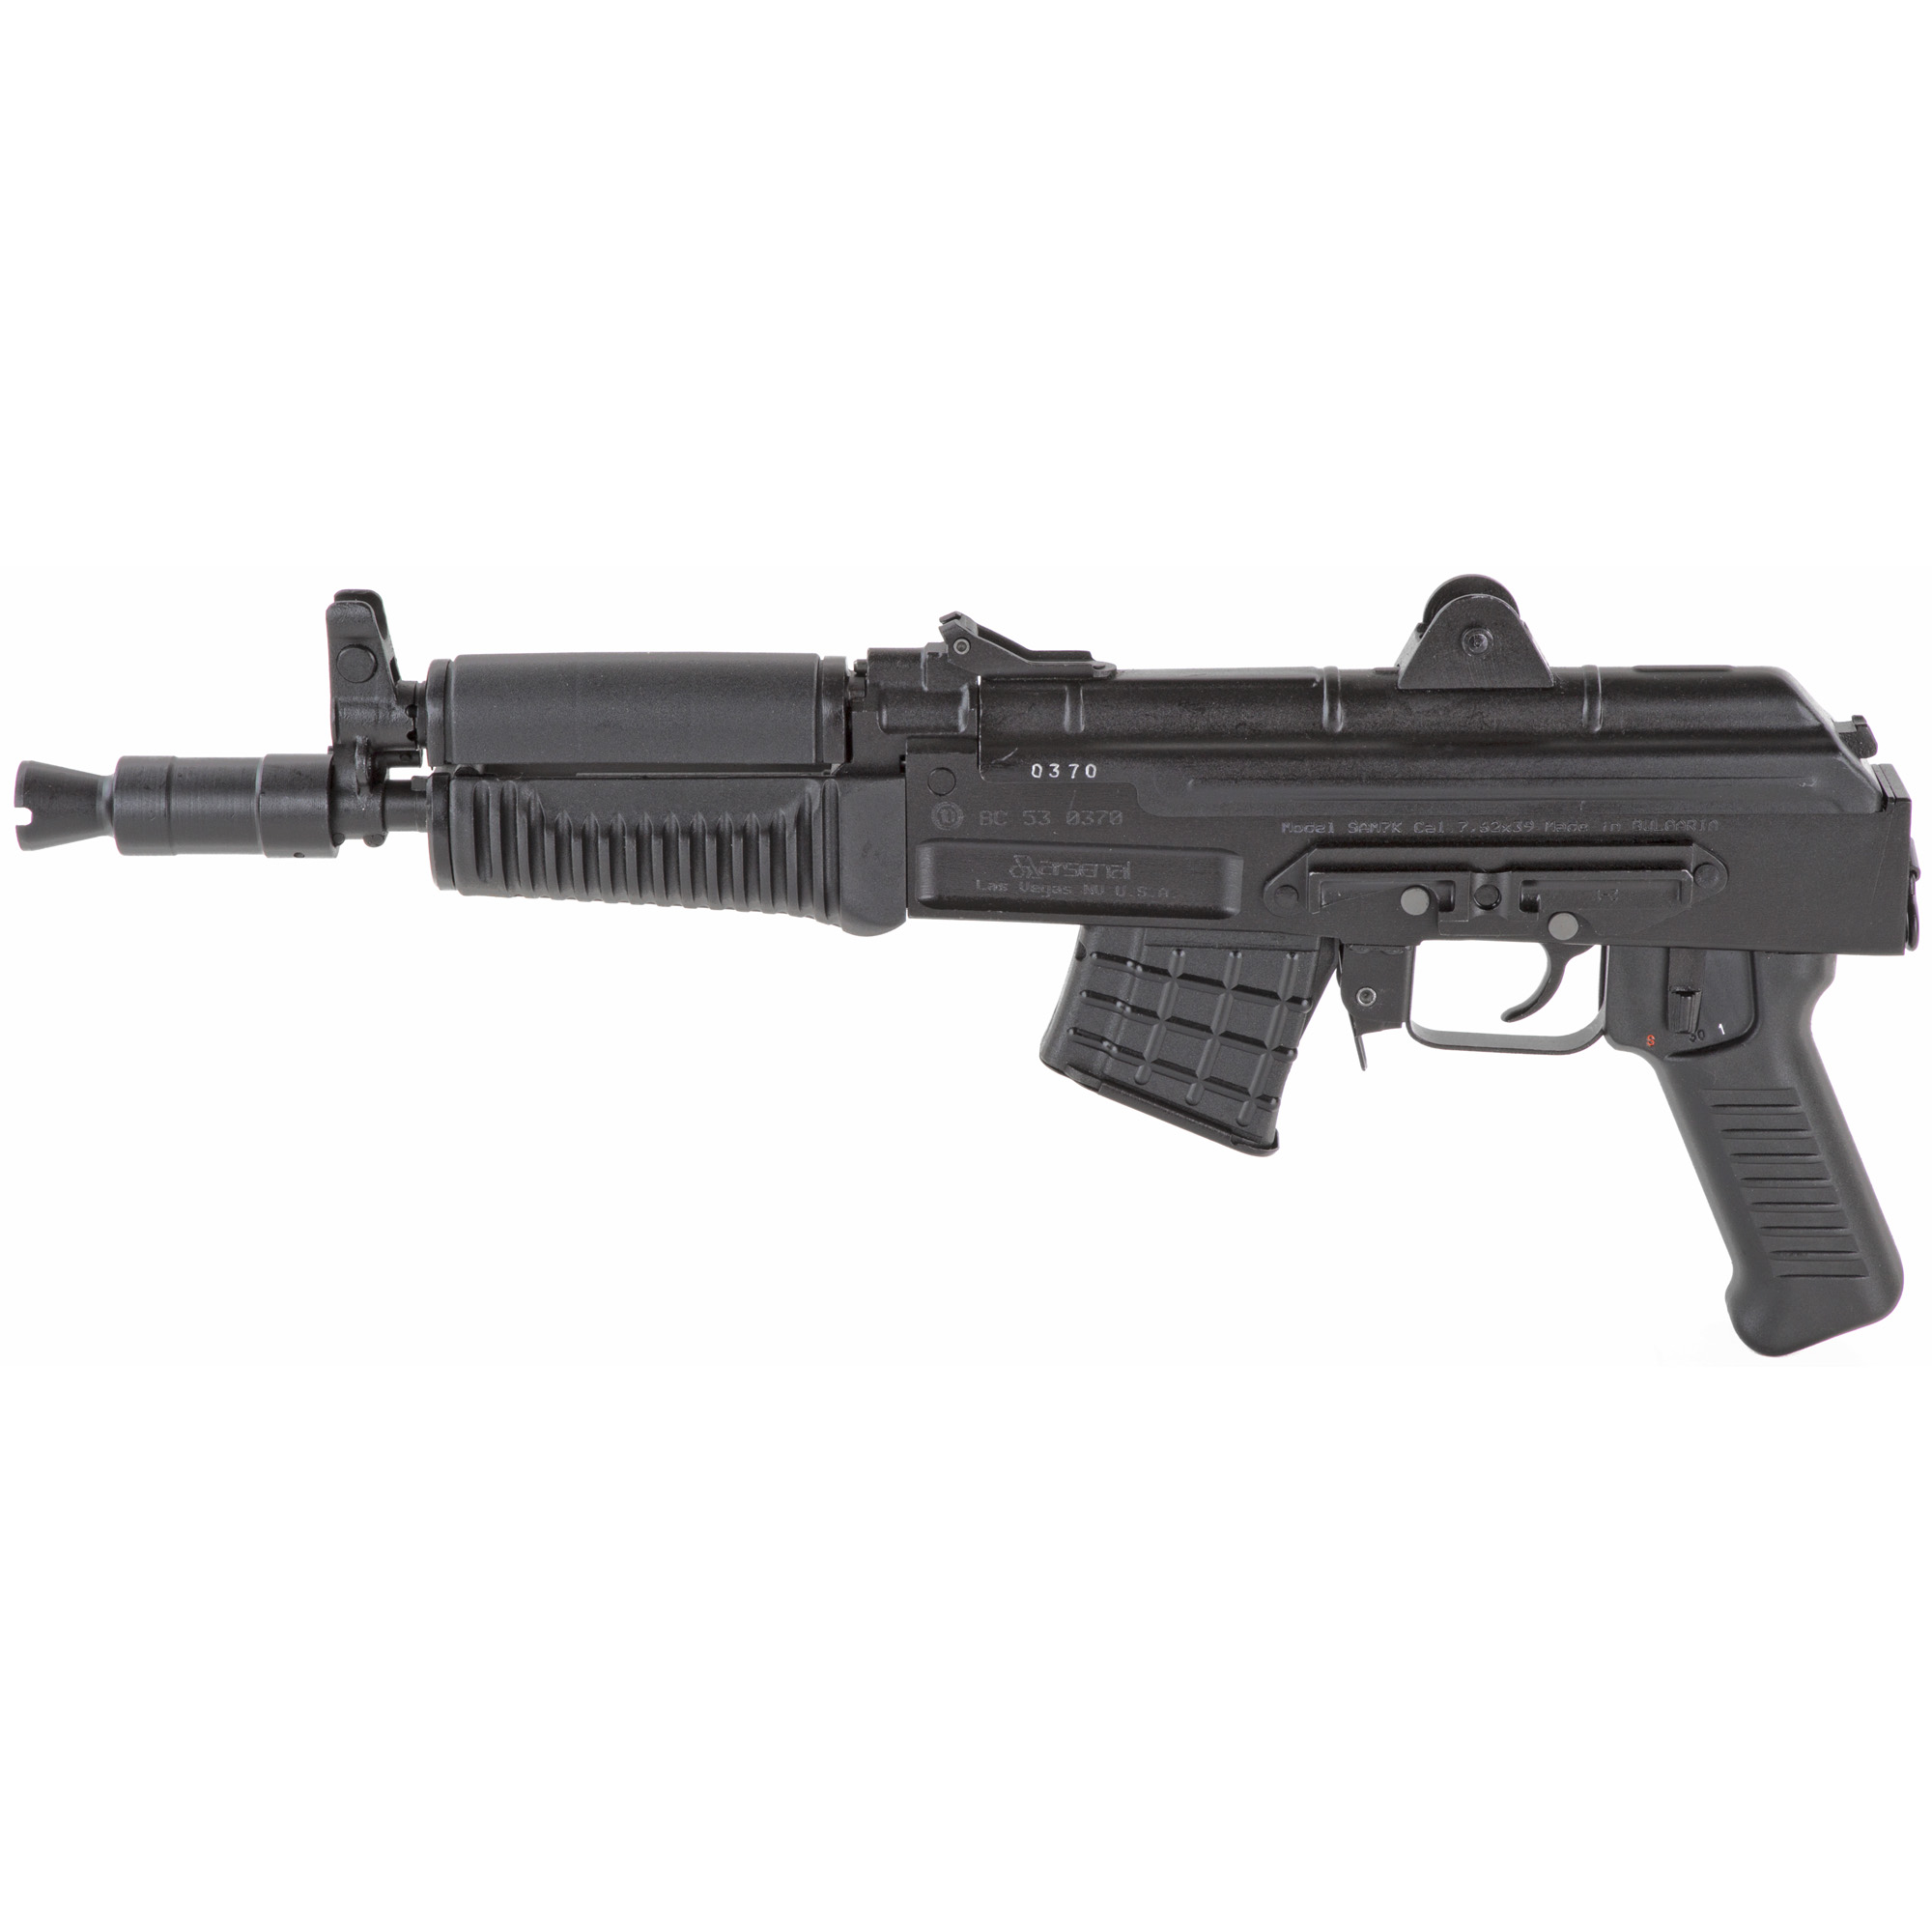 """Arsenal"""" Inc."""" the premier American importer and manufacturer of Kalashnikov-pattern rifles and pistols"""" is proud to offer to the American enthusiast the Bulgarian-made SAM7K Pistol."""